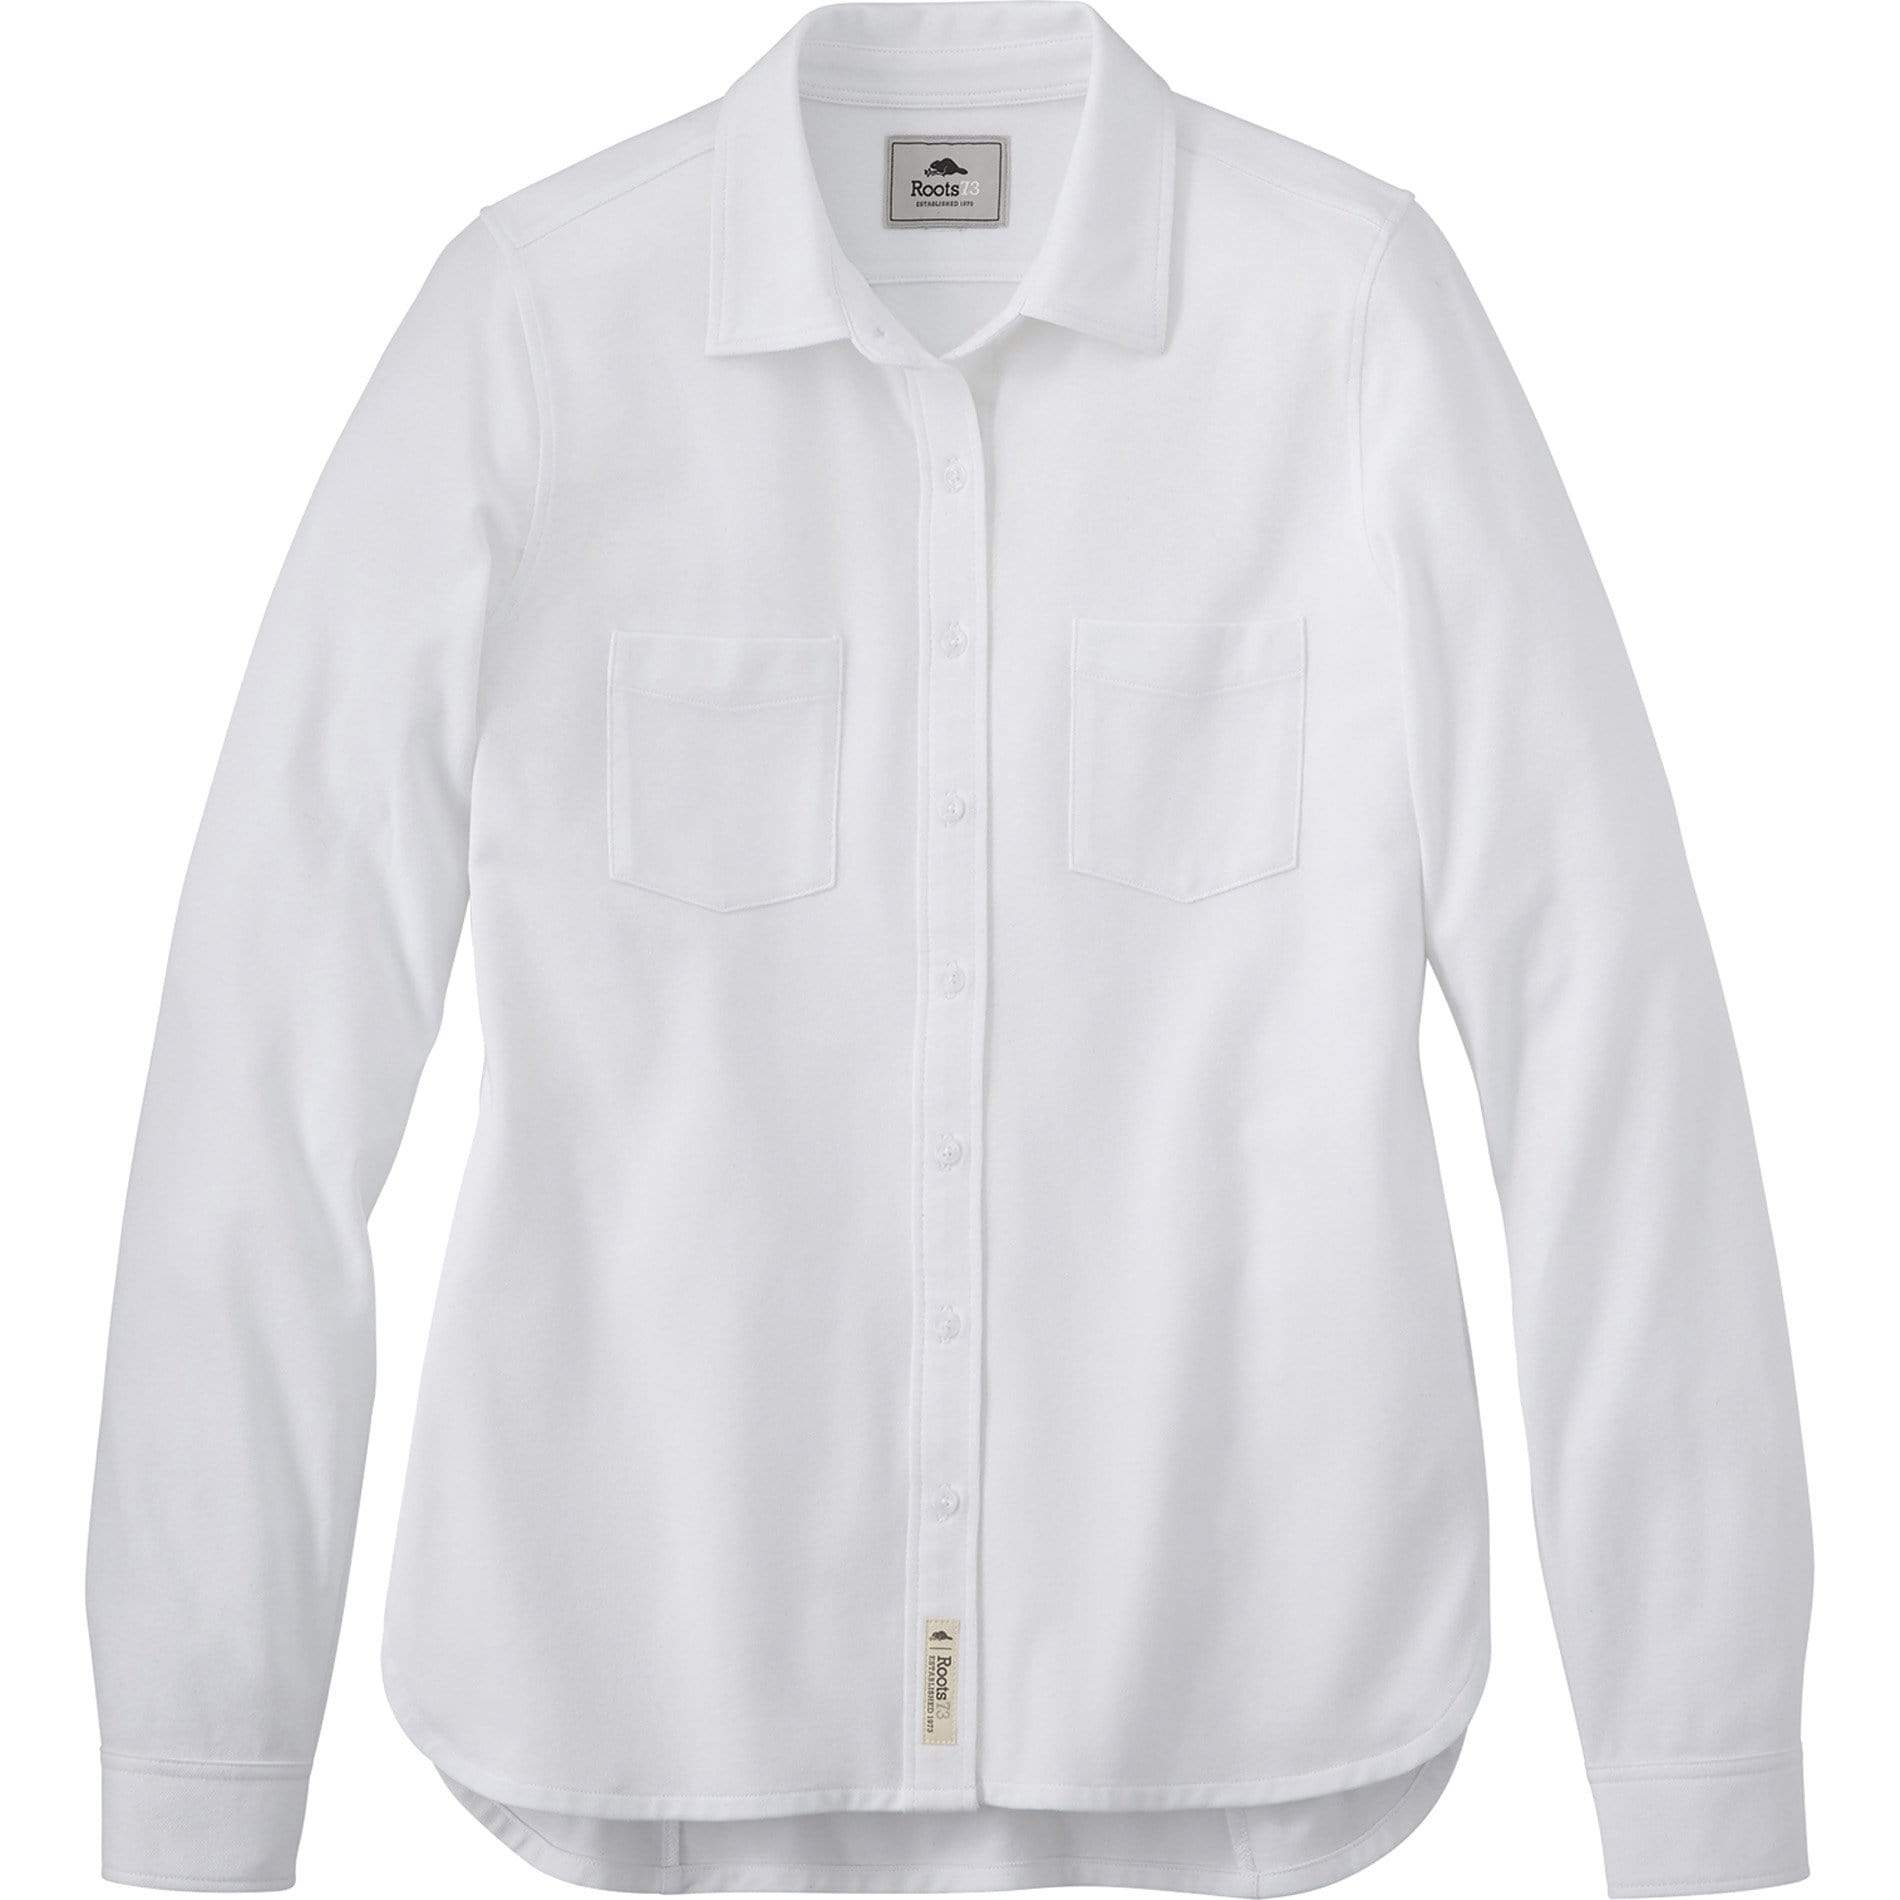 Roots Woven Shirts XS / White Roots73 - Women's BAYWOOD Shirt